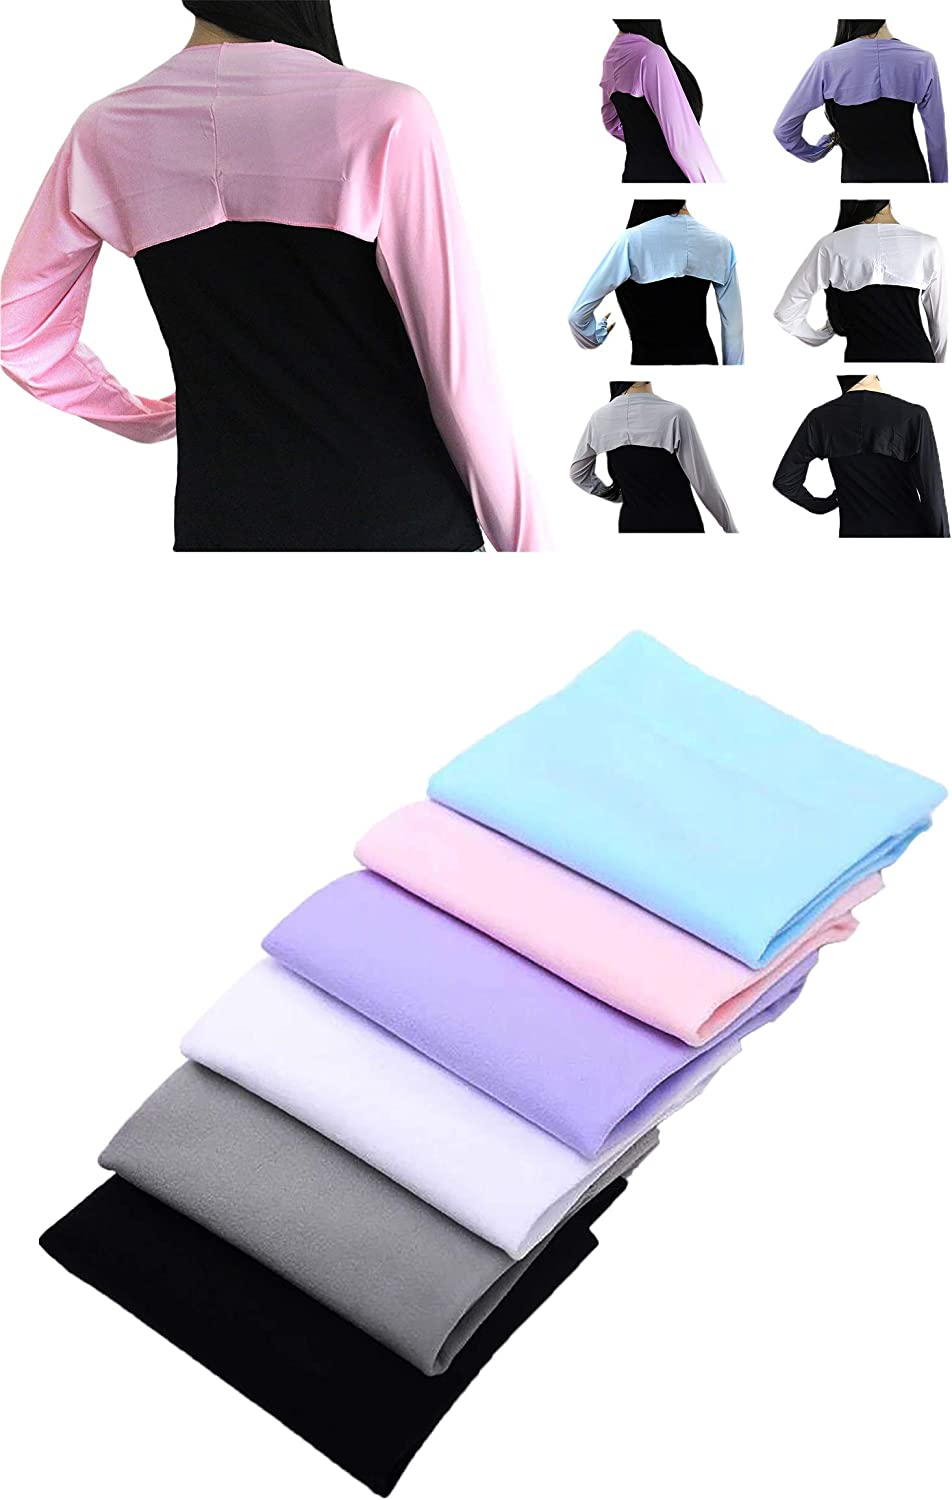 POSMA CS5010 Women Golf Cooling Shawl and Cooling Sleeves Multi Color Gift Set - Ultra Anti-UV,Comfortable & Breathable - Arm Sleeve Sun Protection Shrug for Golf, Sports and Outdoor Activities